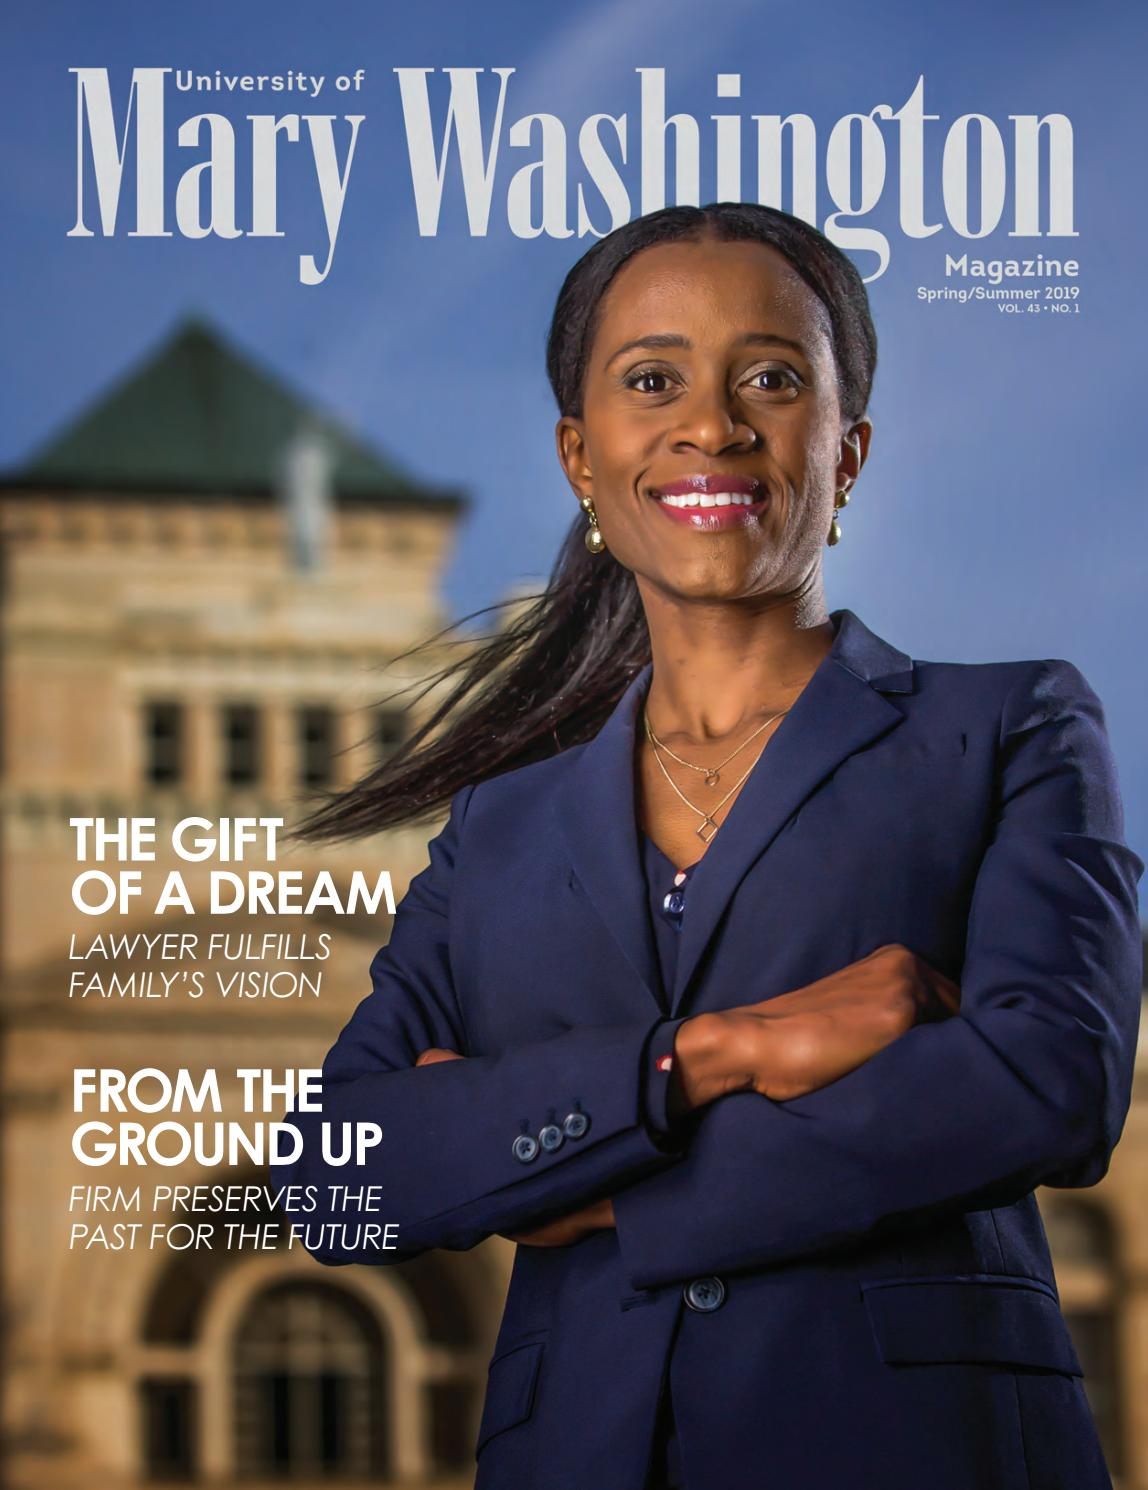 University of Mary Washington Magazine, Spring/Summer 2019, Vol  43